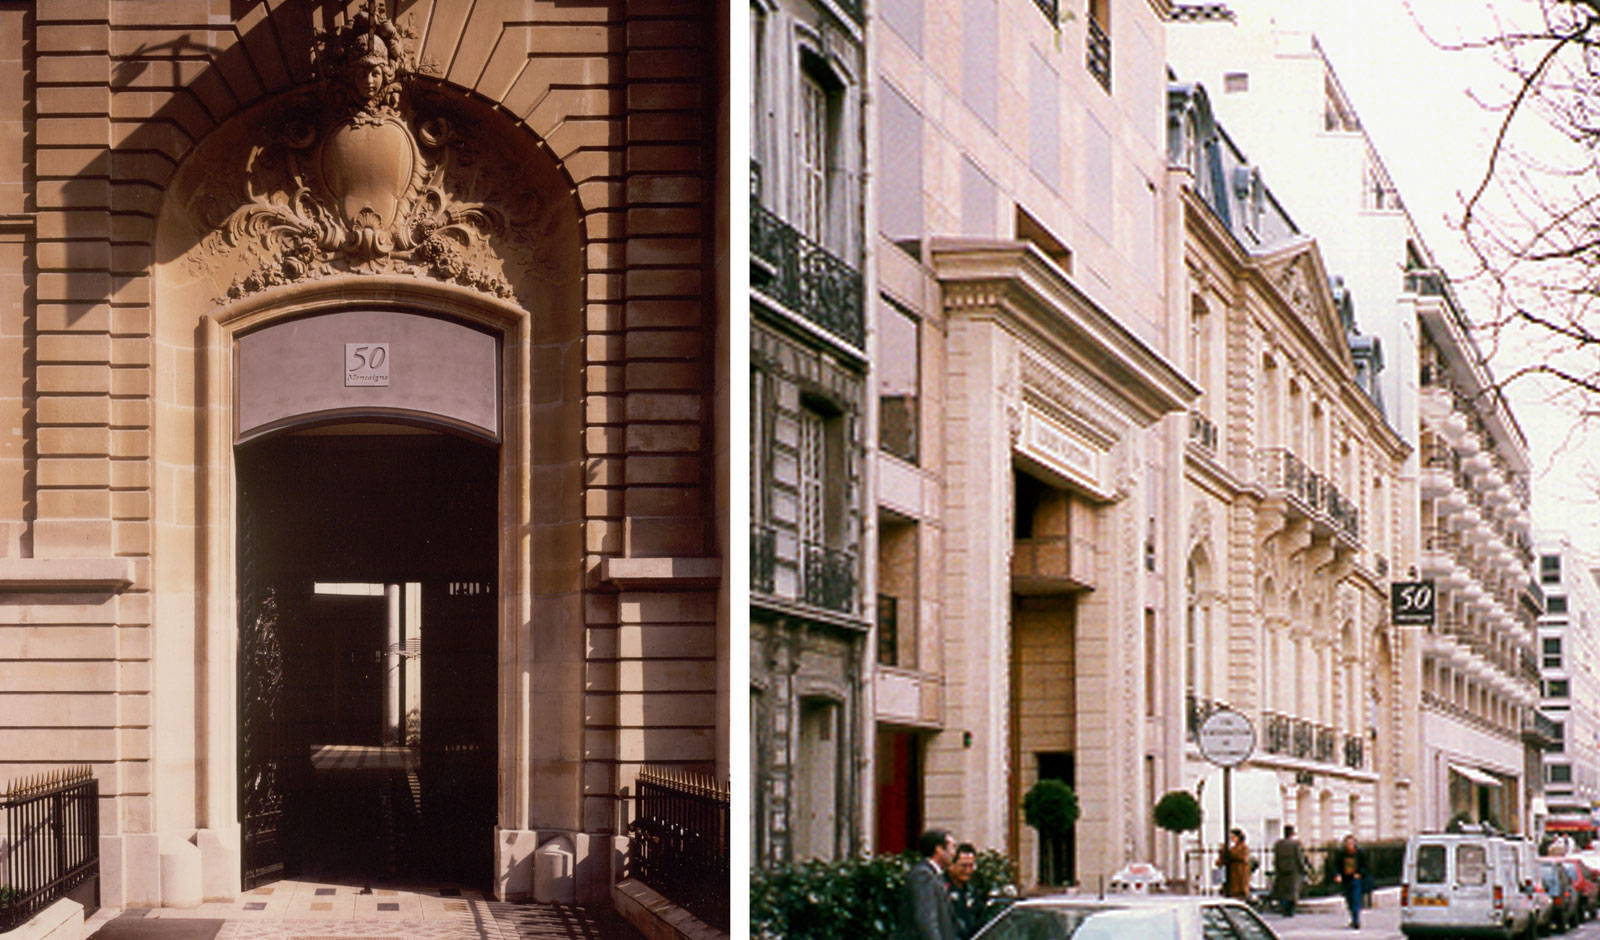 intimate entrance from a prominent Parisian Avenue